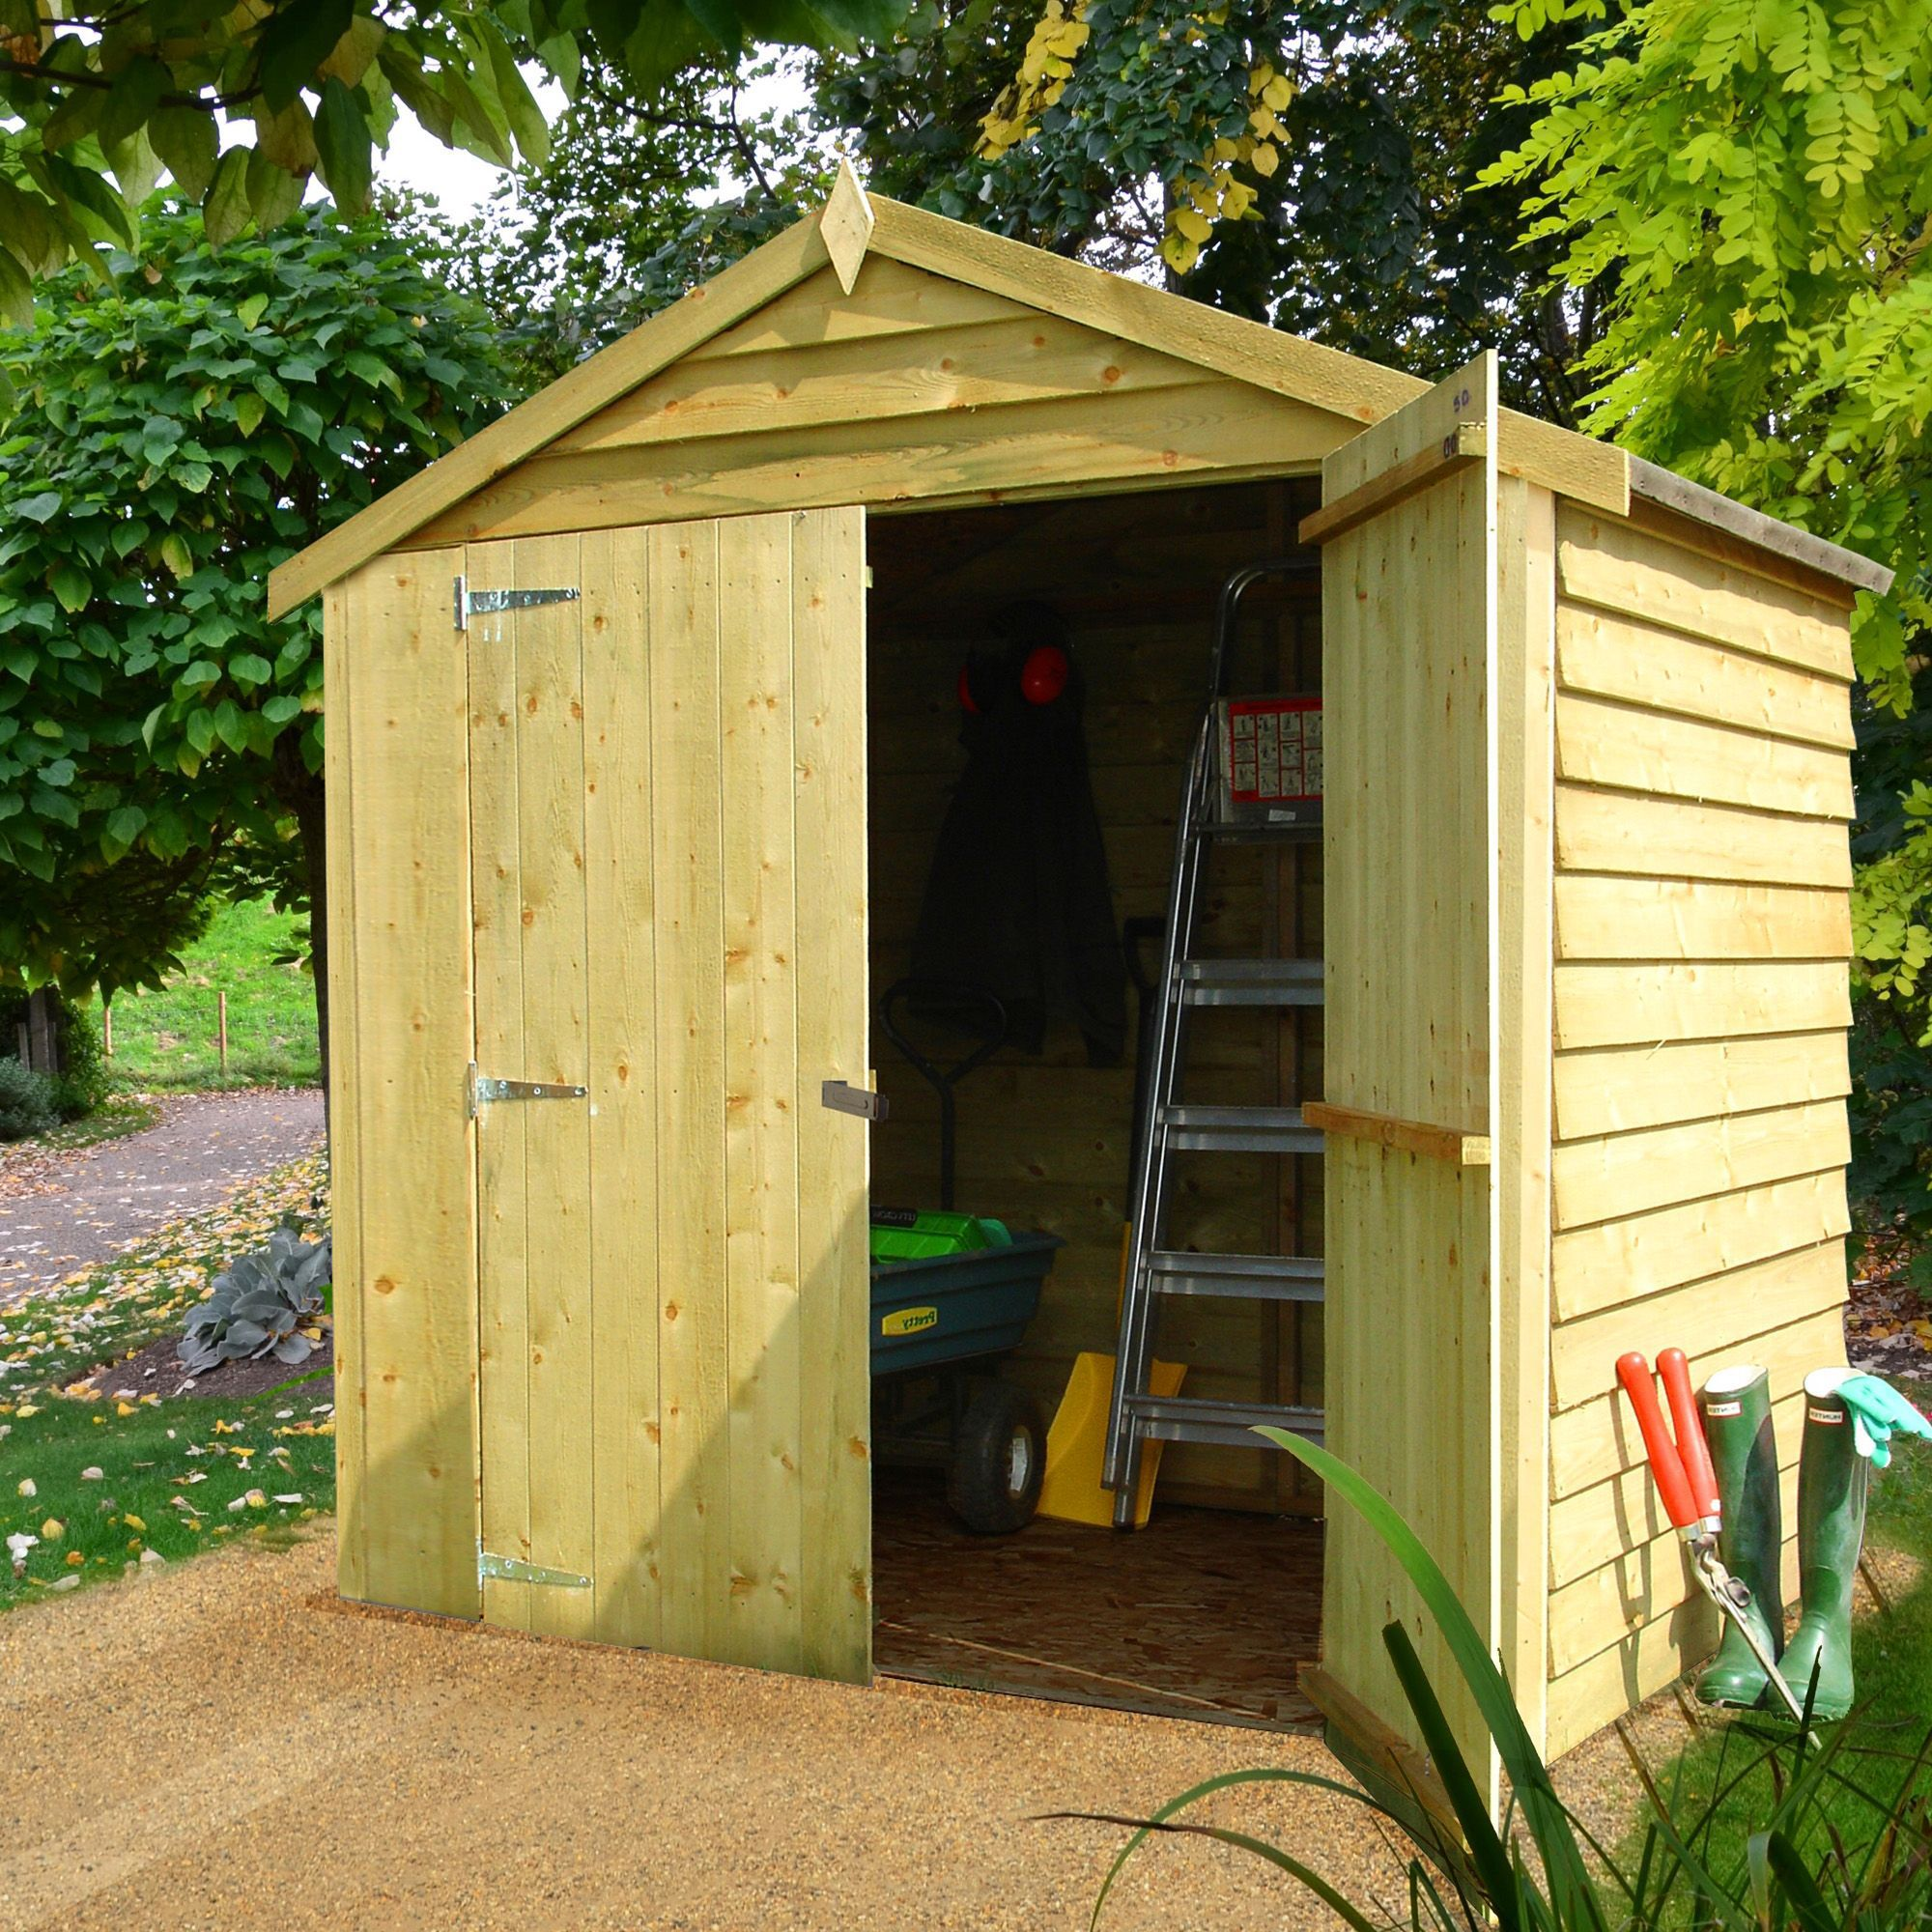 6x4 sheds storage apex overlap double door wooden shed for Garden shed 6x4